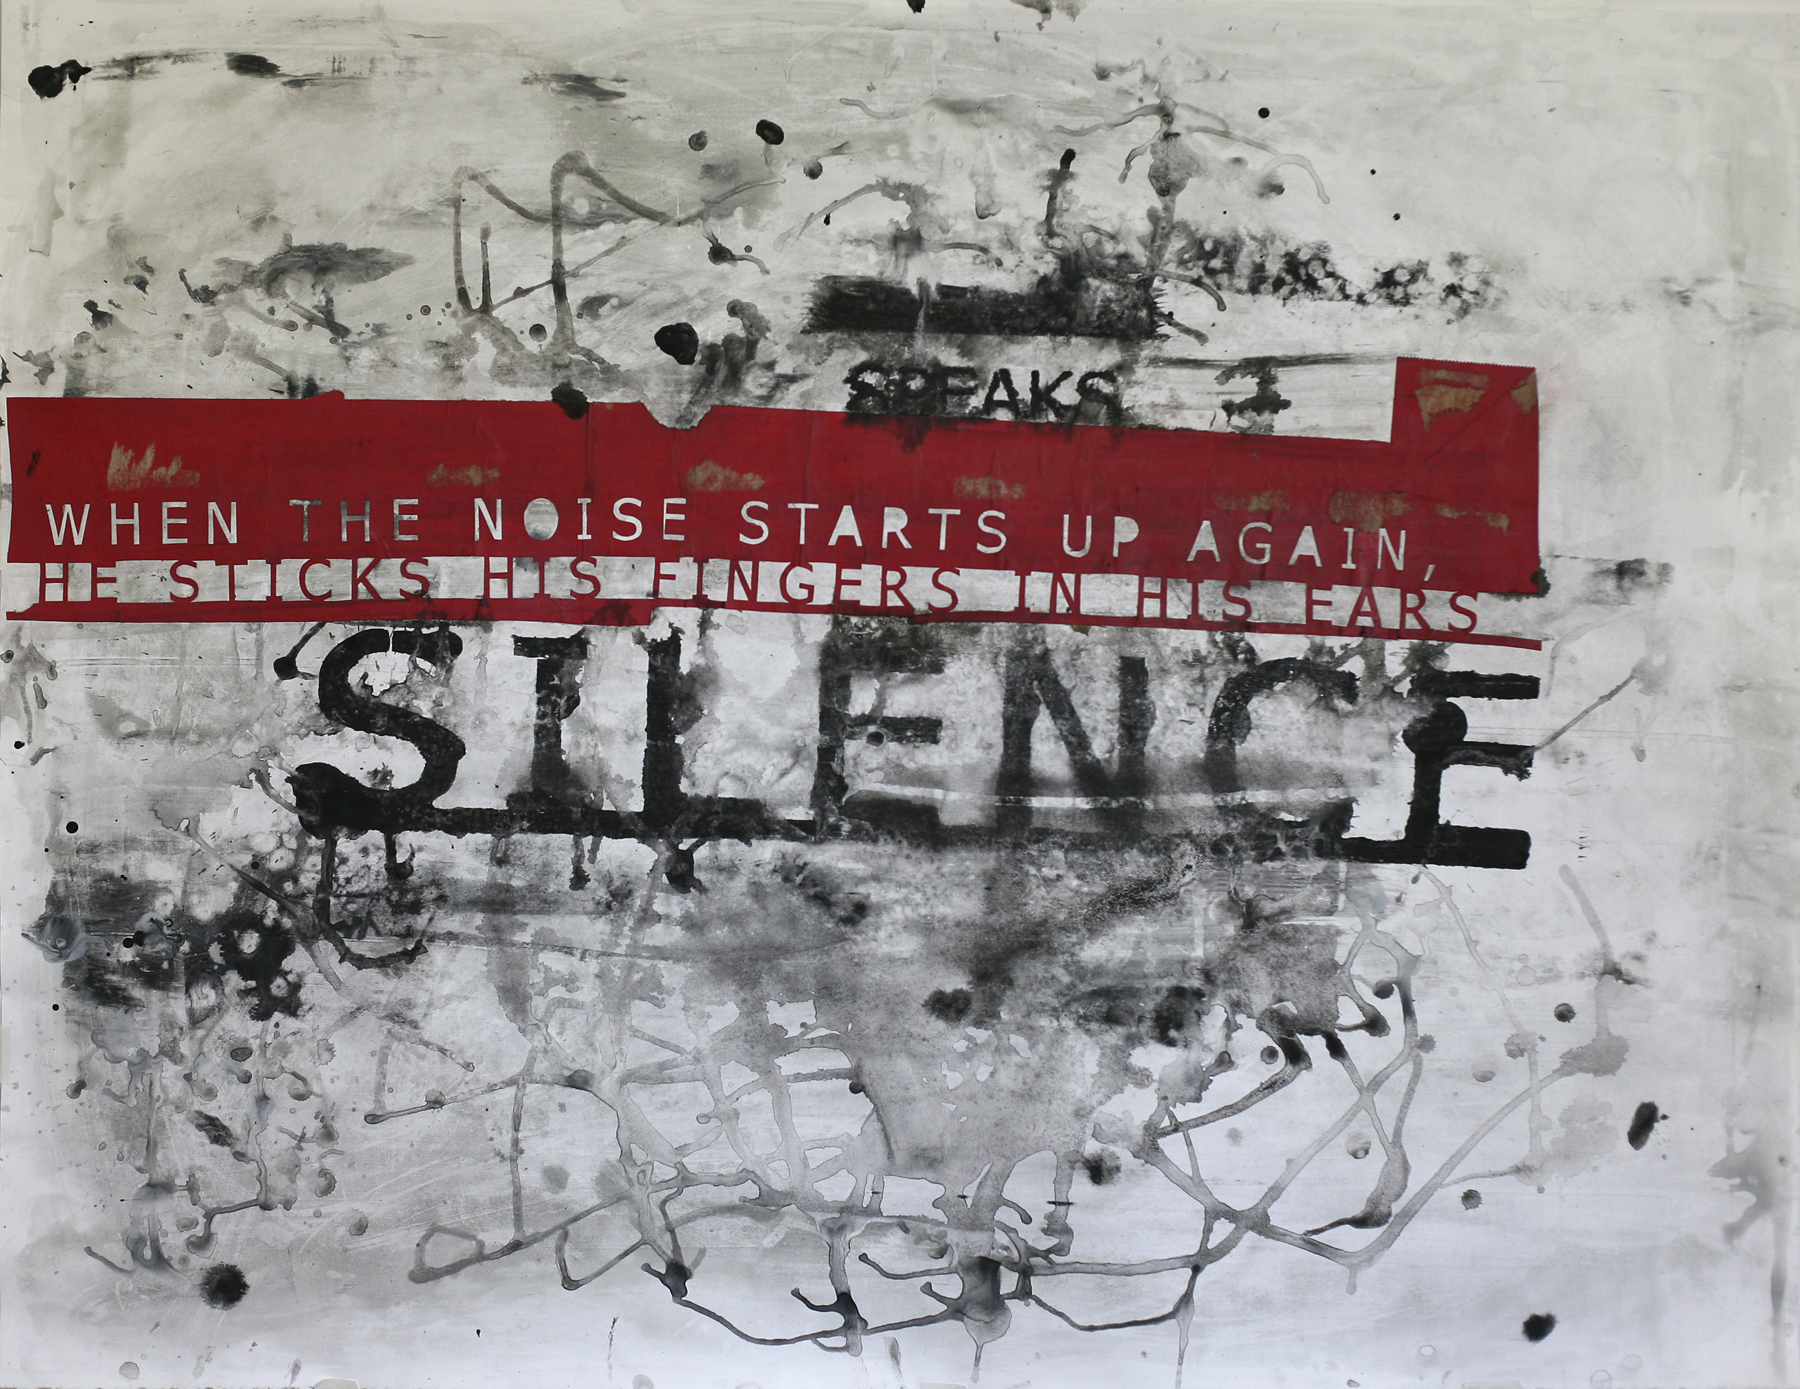 Silence Fingers Ears, acrylic and paste on paper